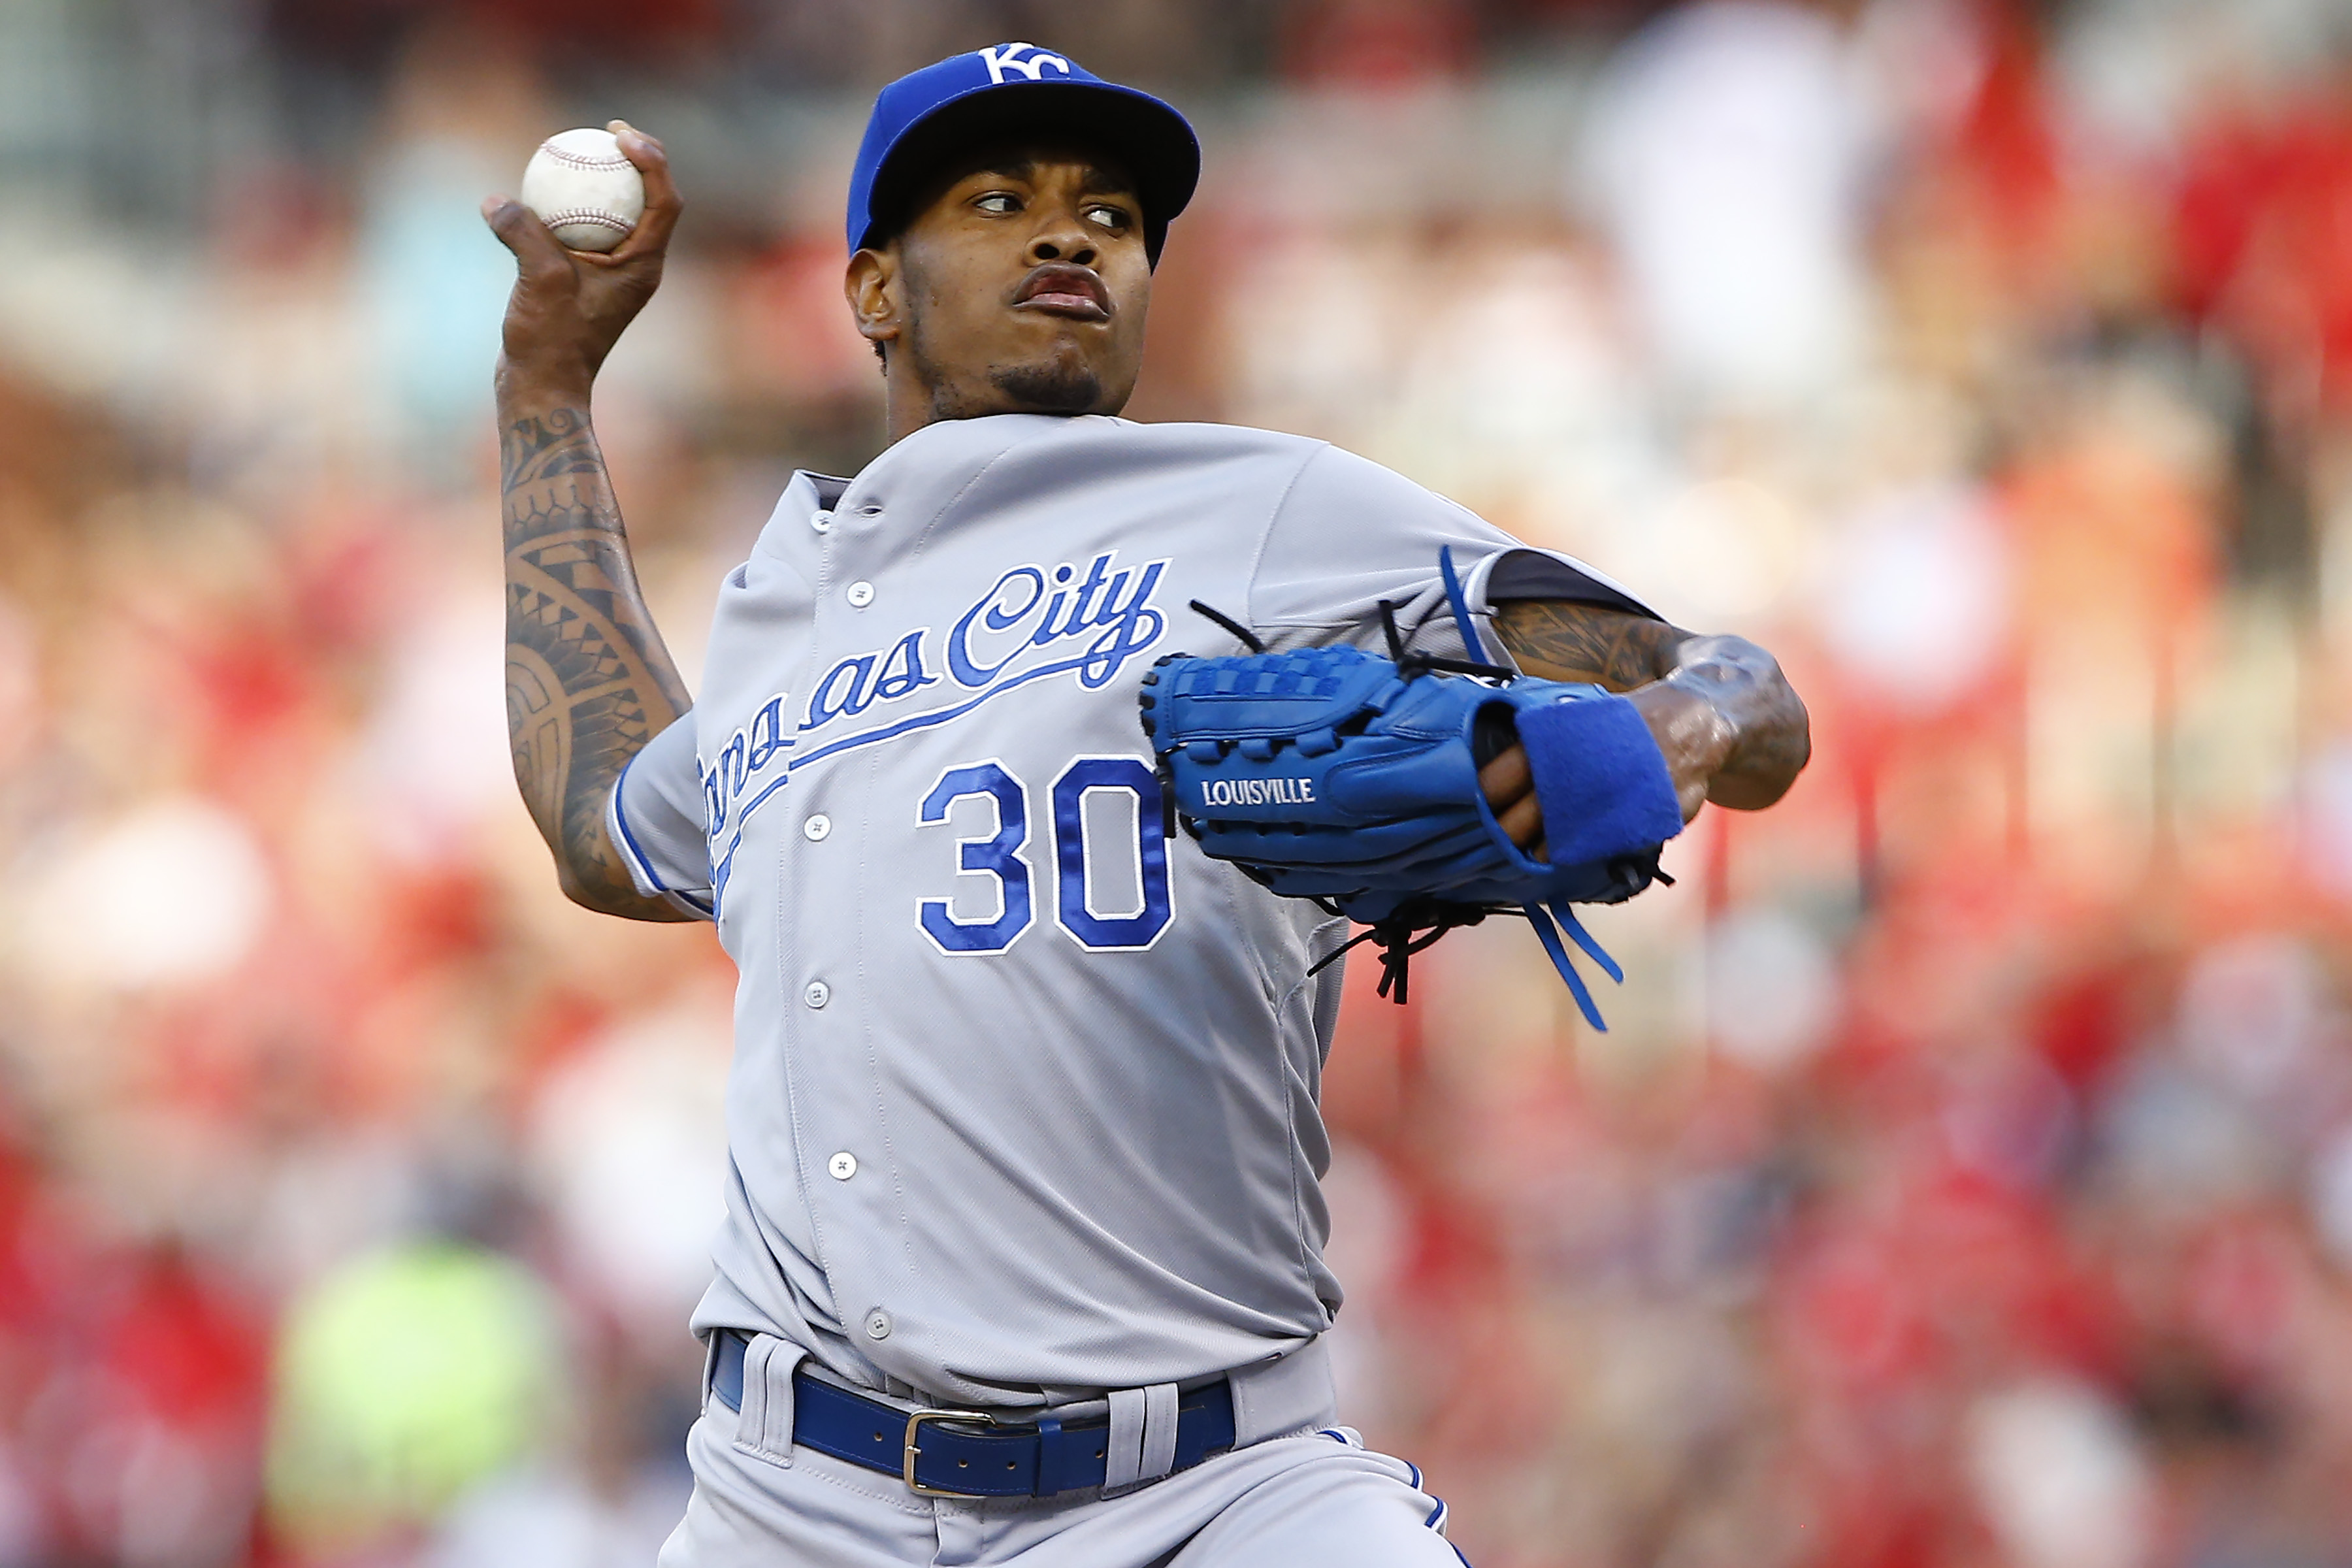 Kansas City Royals starting pitcher Yordano Ventura throws during the first inning of a baseball game against the St. Louis Cardinals, Friday, June 12, 2015, in St. Louis. (AP Photo/Billy Hurst)